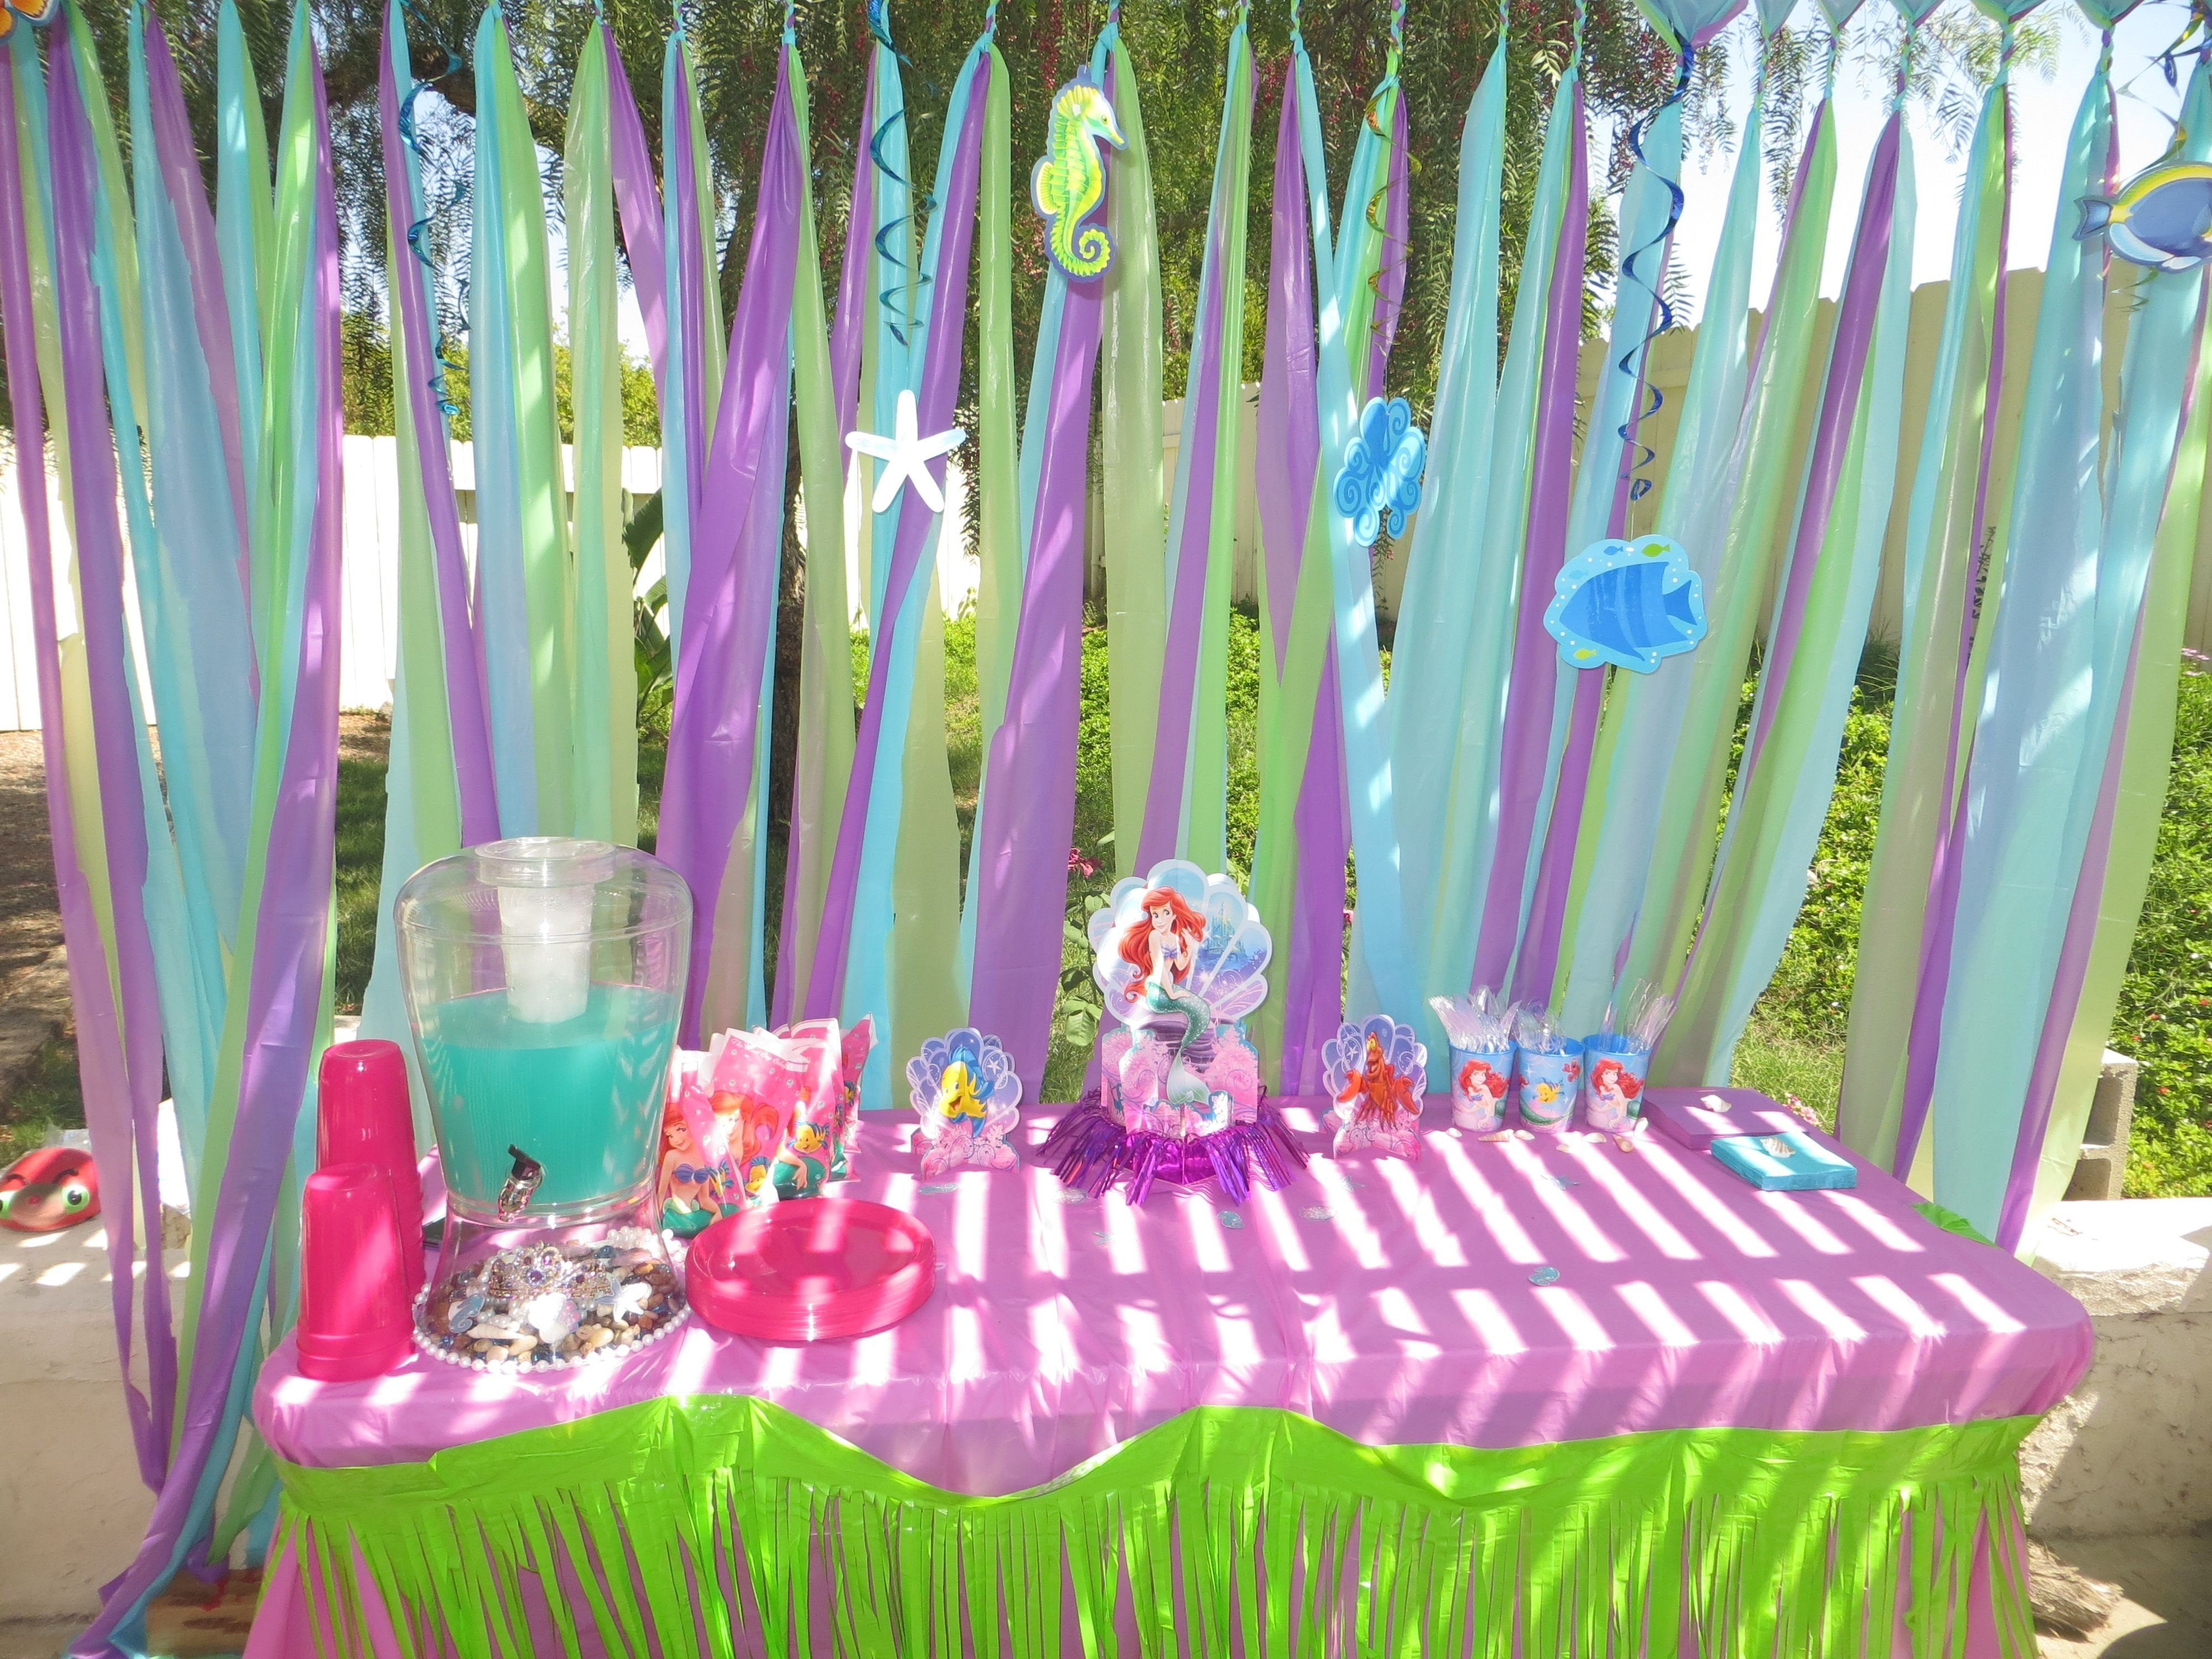 10 Spectacular Little Mermaid Party Decoration Ideas ariannas 3rd birthday party decorations the little mermaid party & 10 Spectacular Little Mermaid Party Decoration Ideas